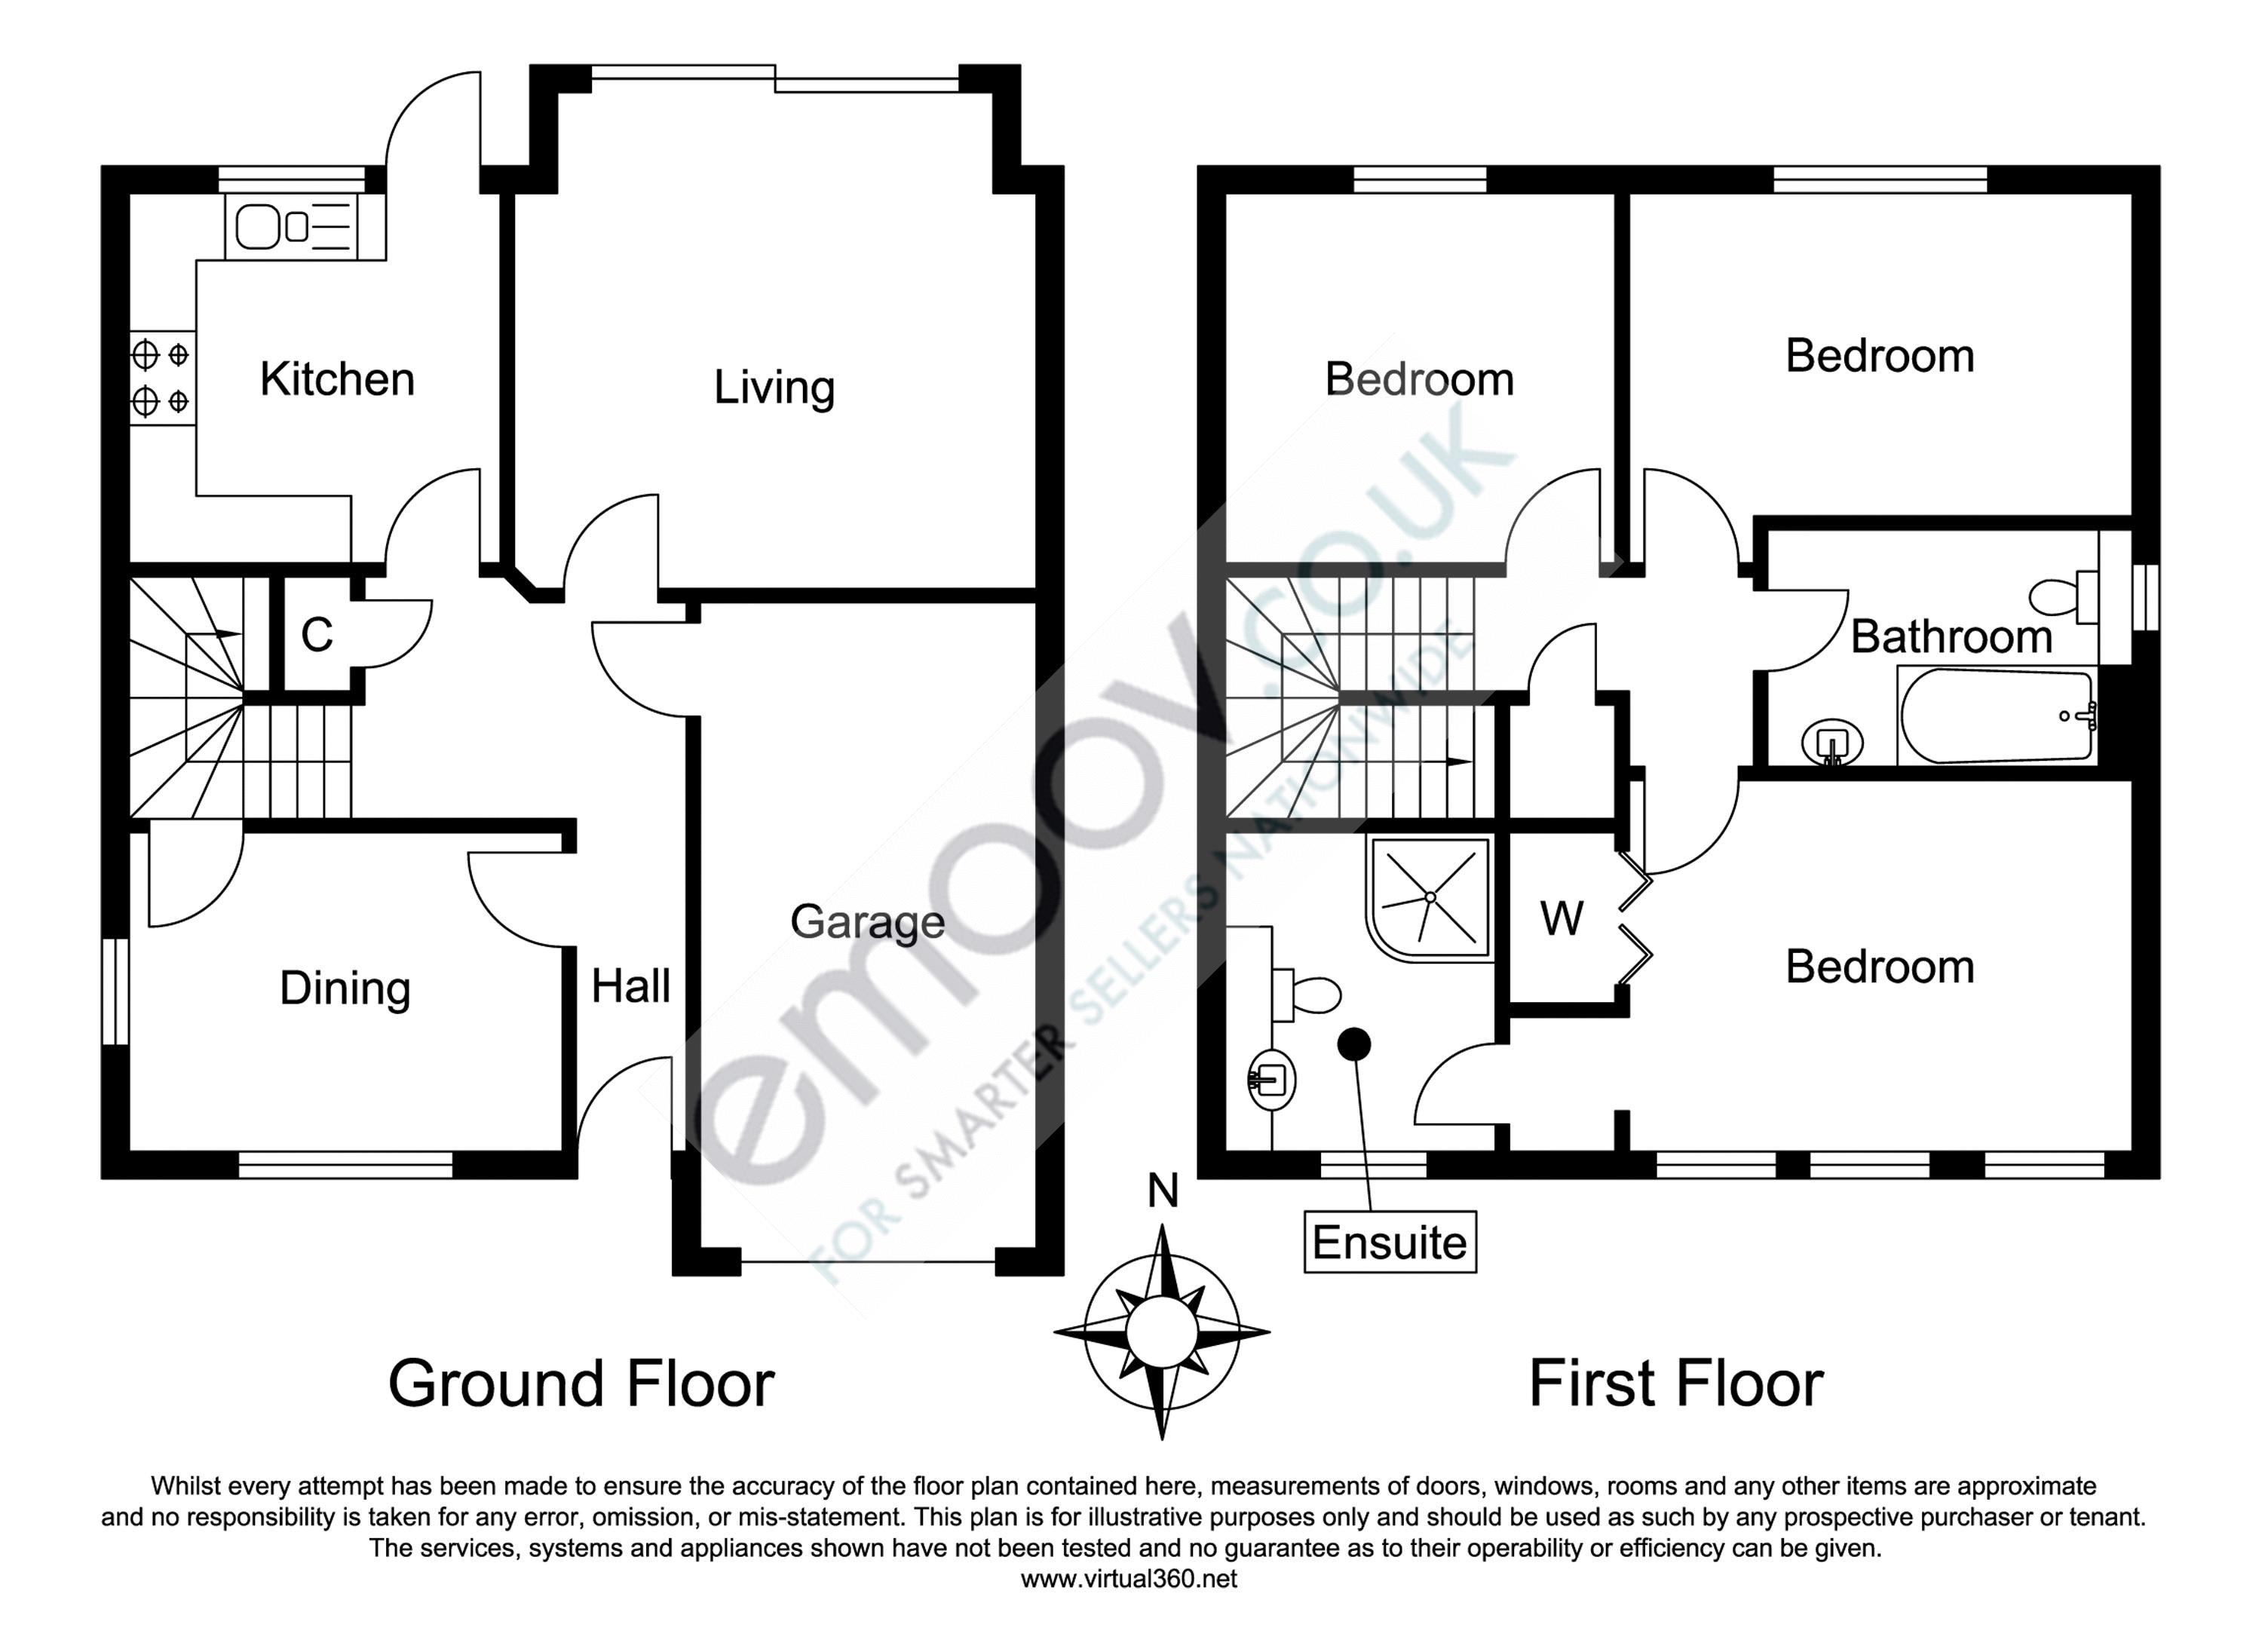 Clayhill Copse, Swindon floor plan